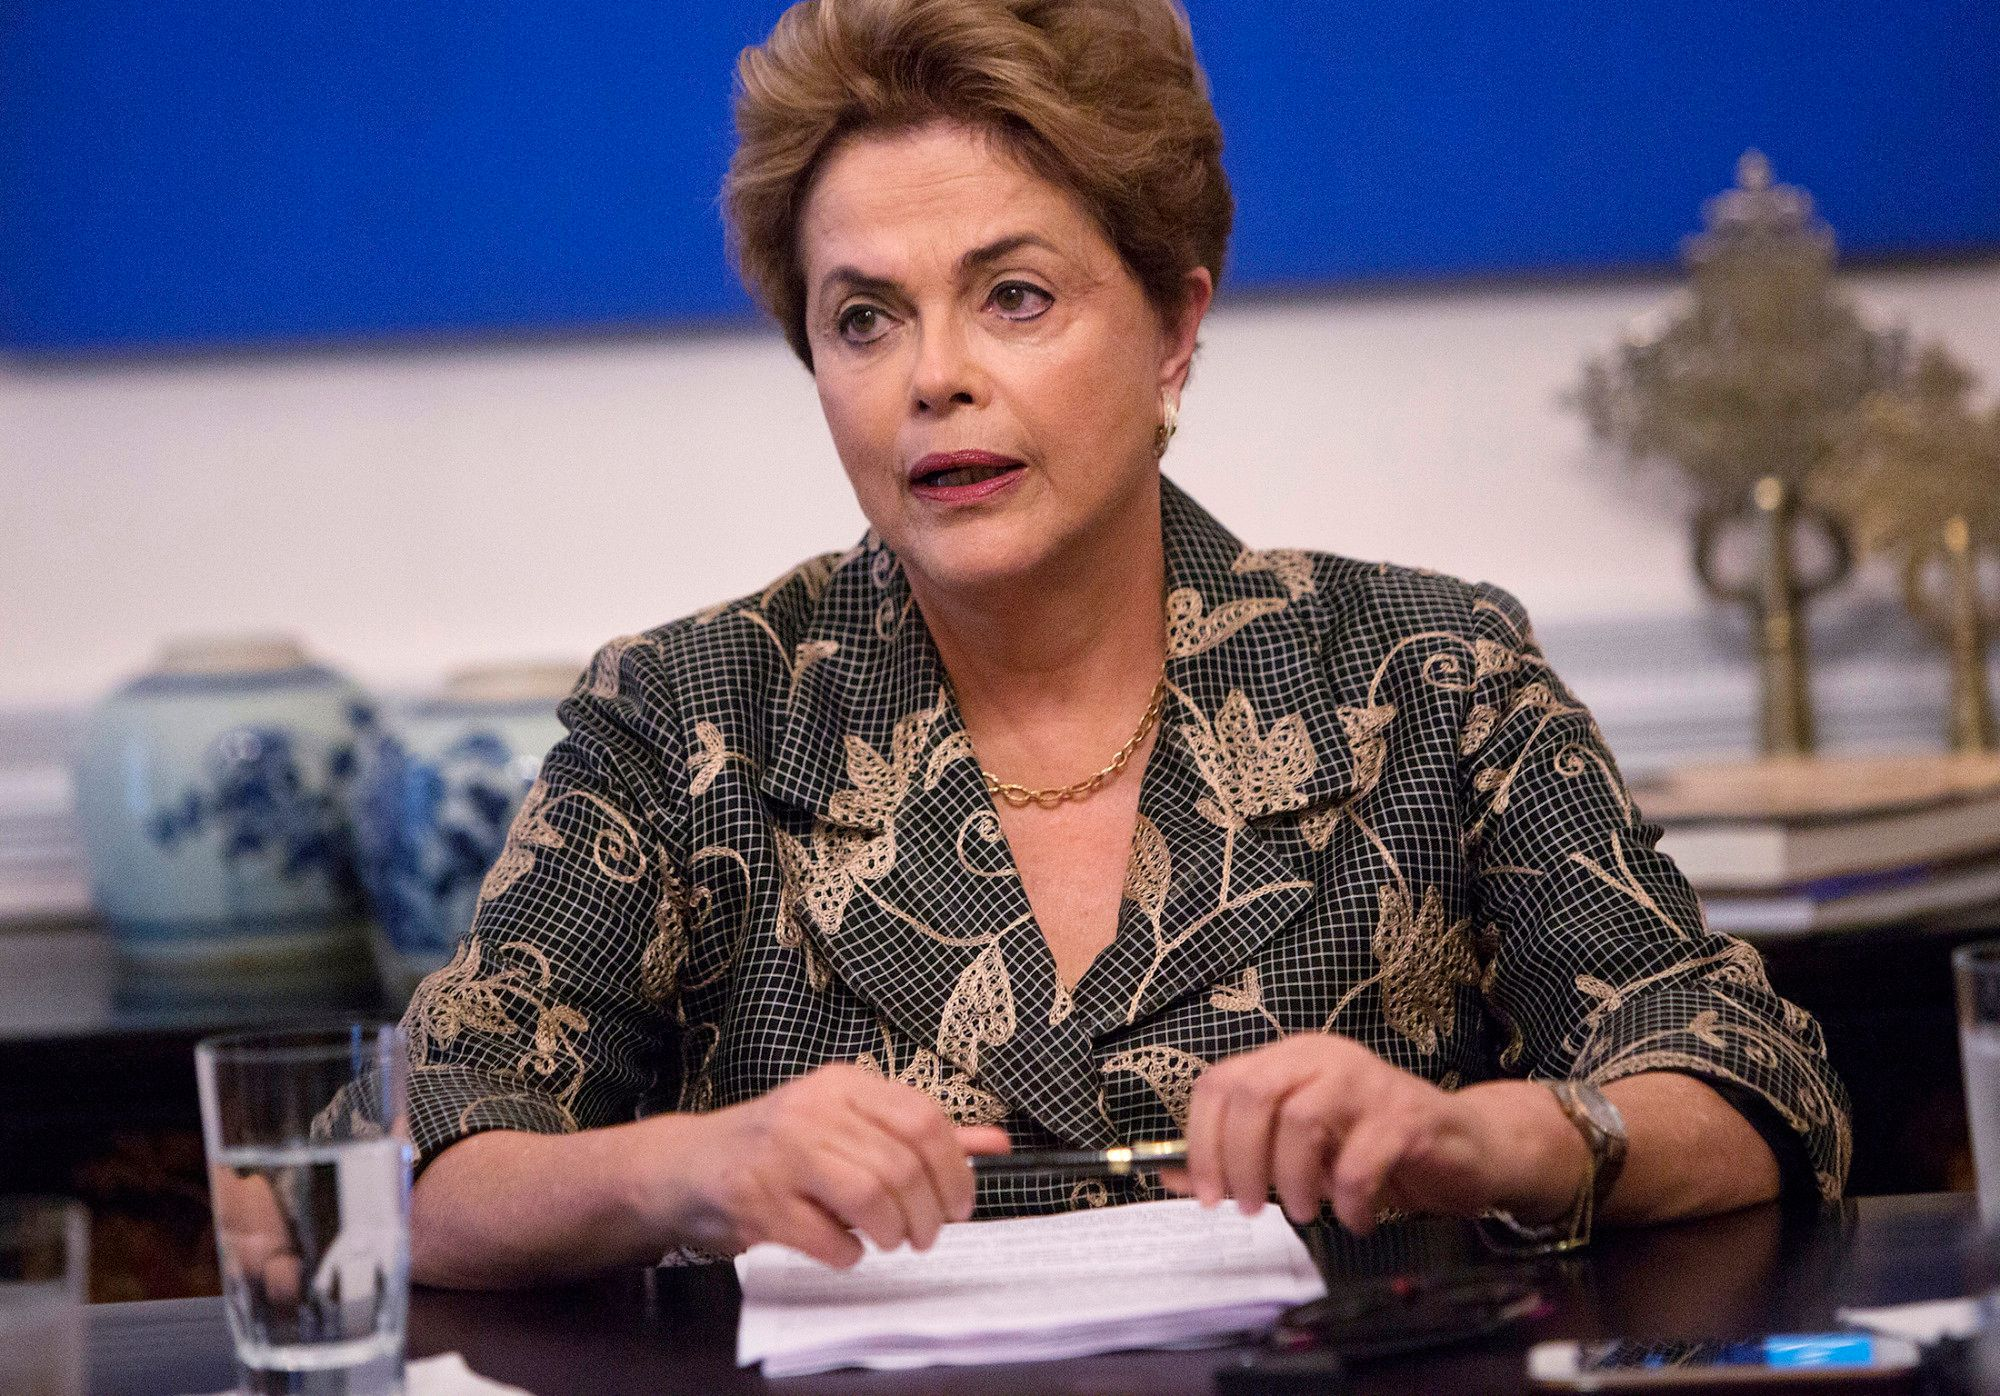 Brazil Impeachment Vote May Spell Rousseff's Last Day on Job - Bloomberg